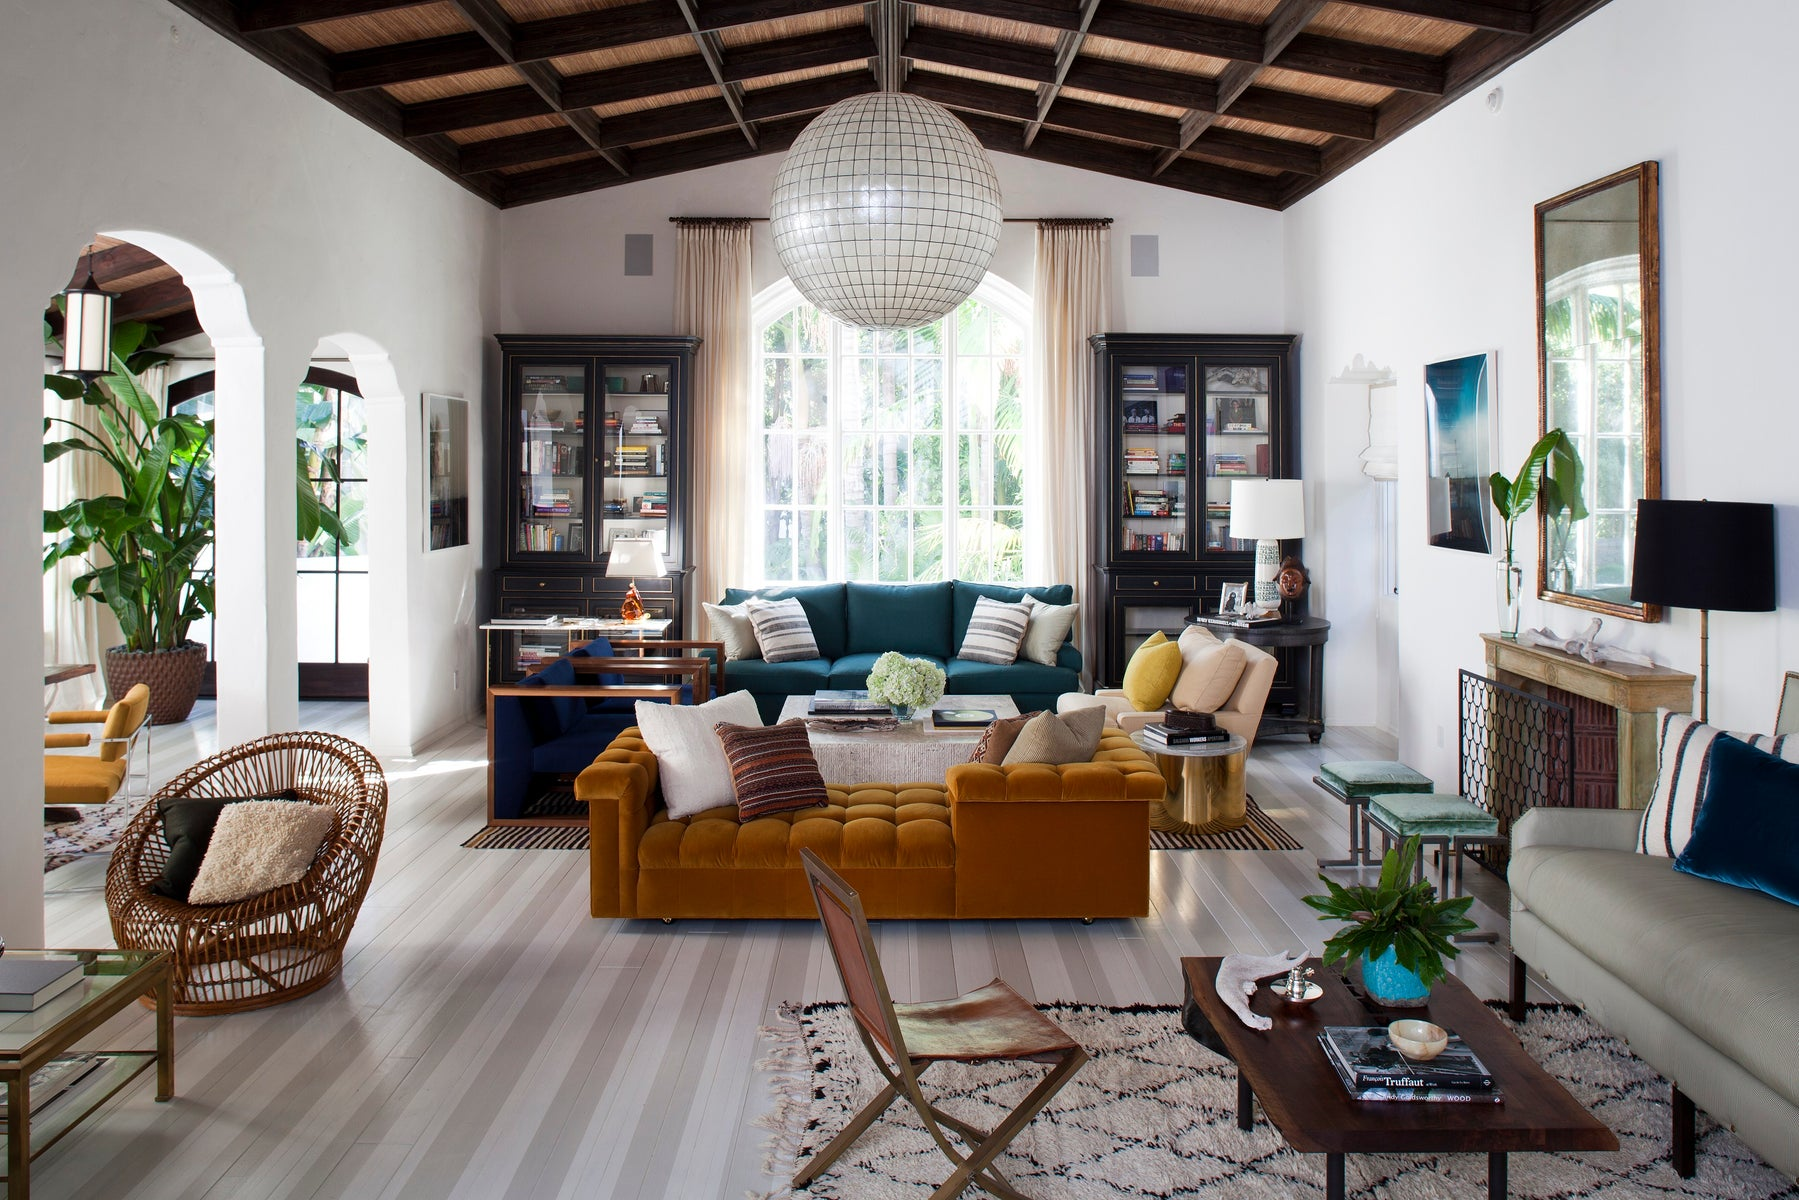 1stdibs: Antiques, Vintage And Mid-Century Modern